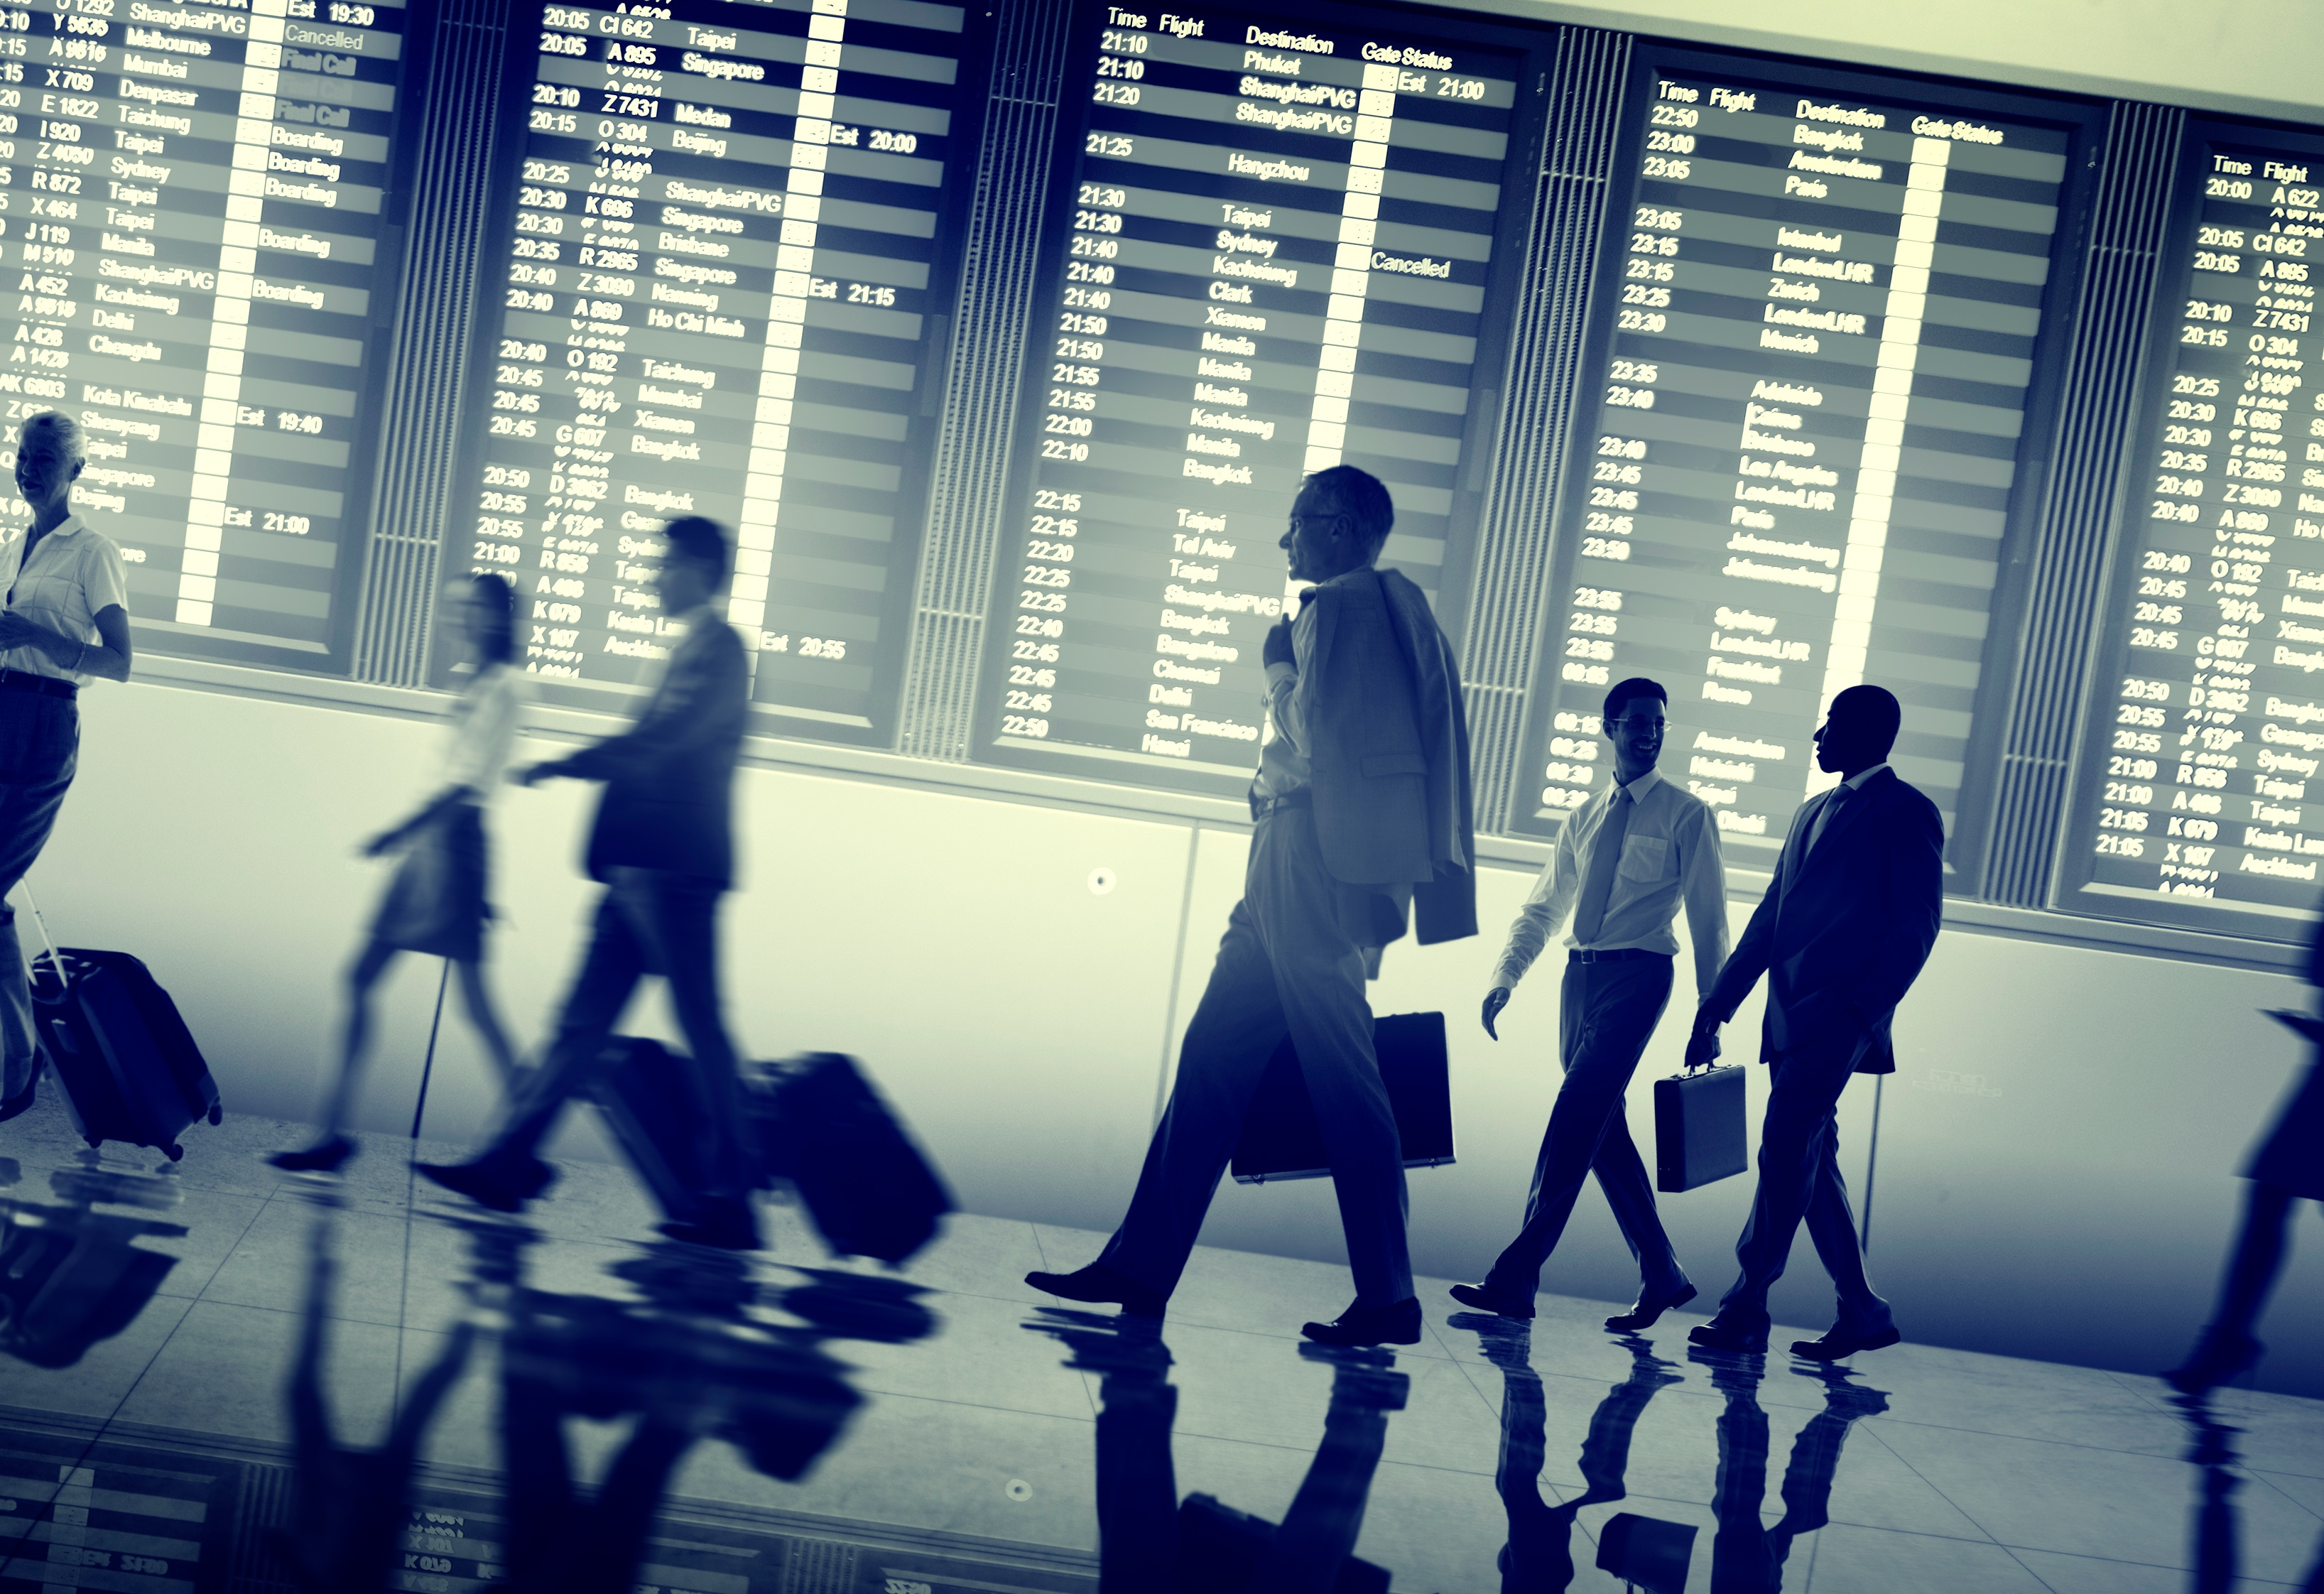 Remove the stress of business travel bookings in 2017. TravelCloud provides all you need for an easy, stress free approach to business travel